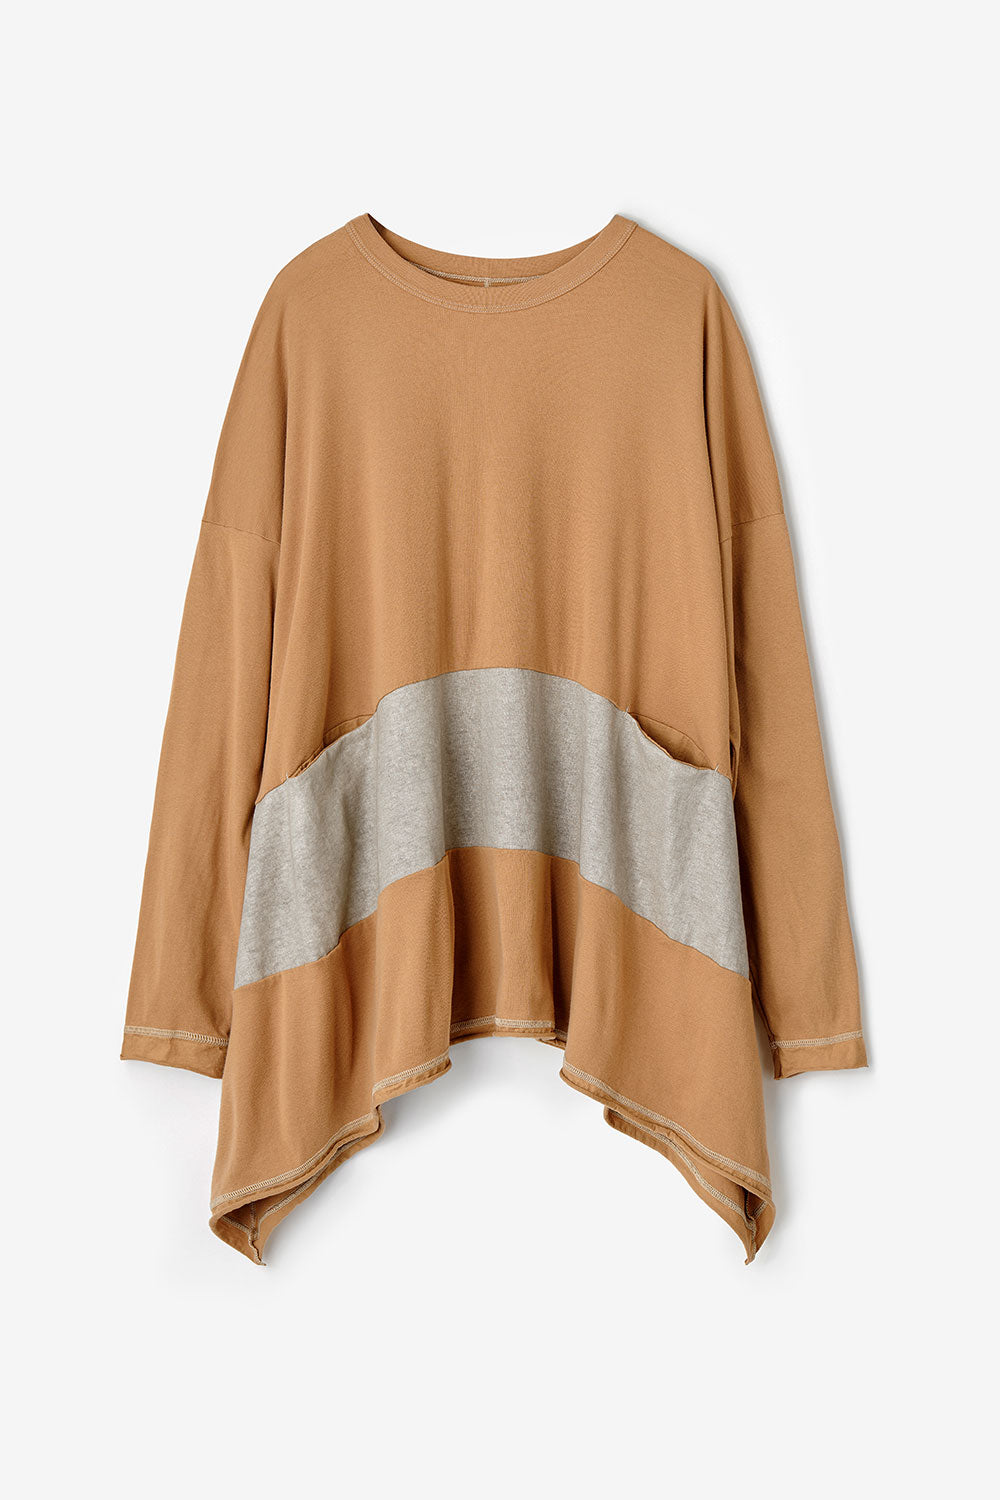 Alabama Chanin Natalie's Pullover Women's Pull On Top with Long Sleeves and Pockets in Camel